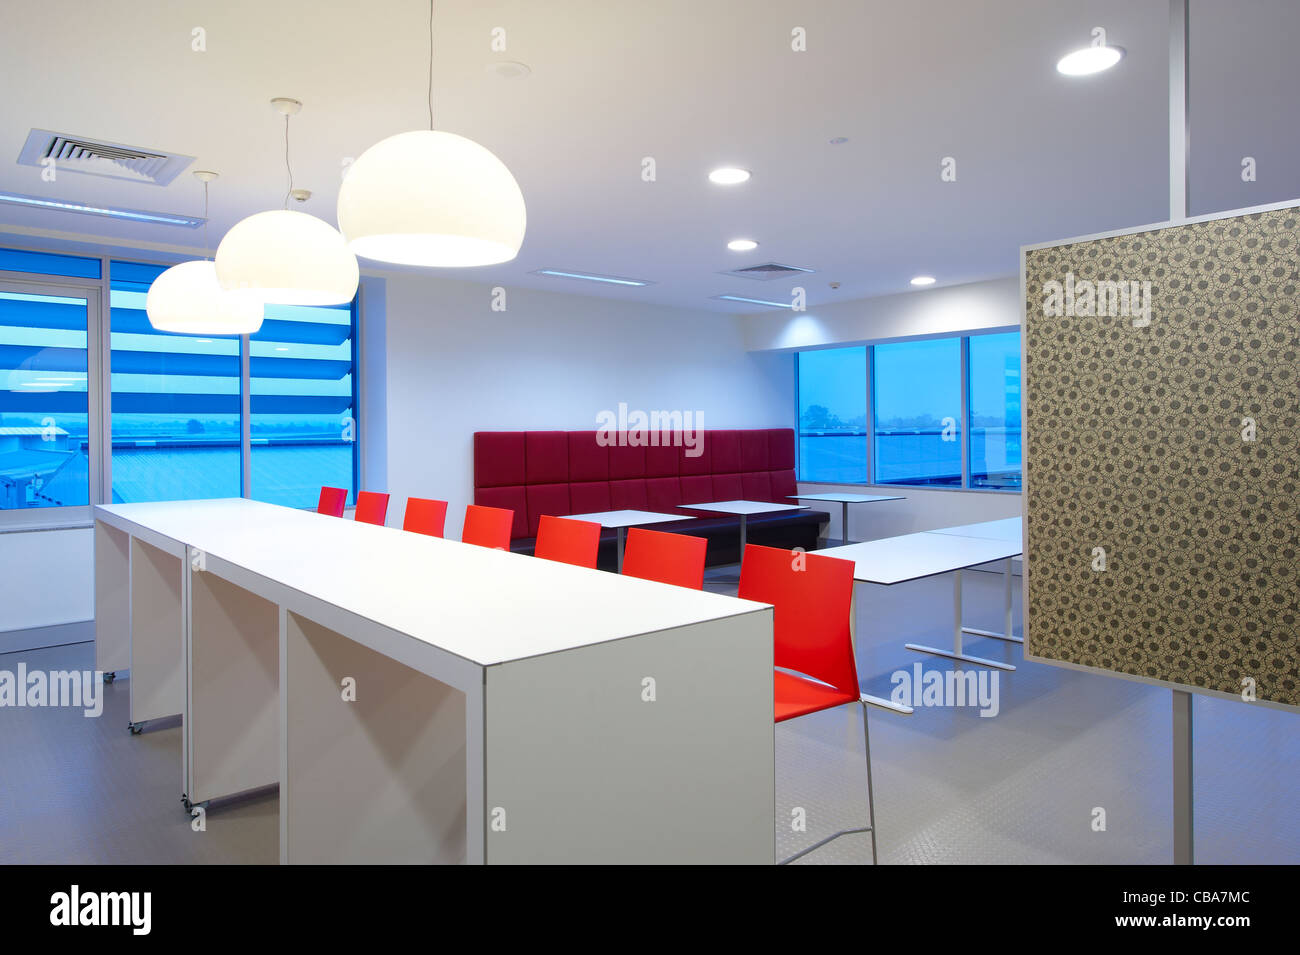 Modern commercial lunch room - Stock Image